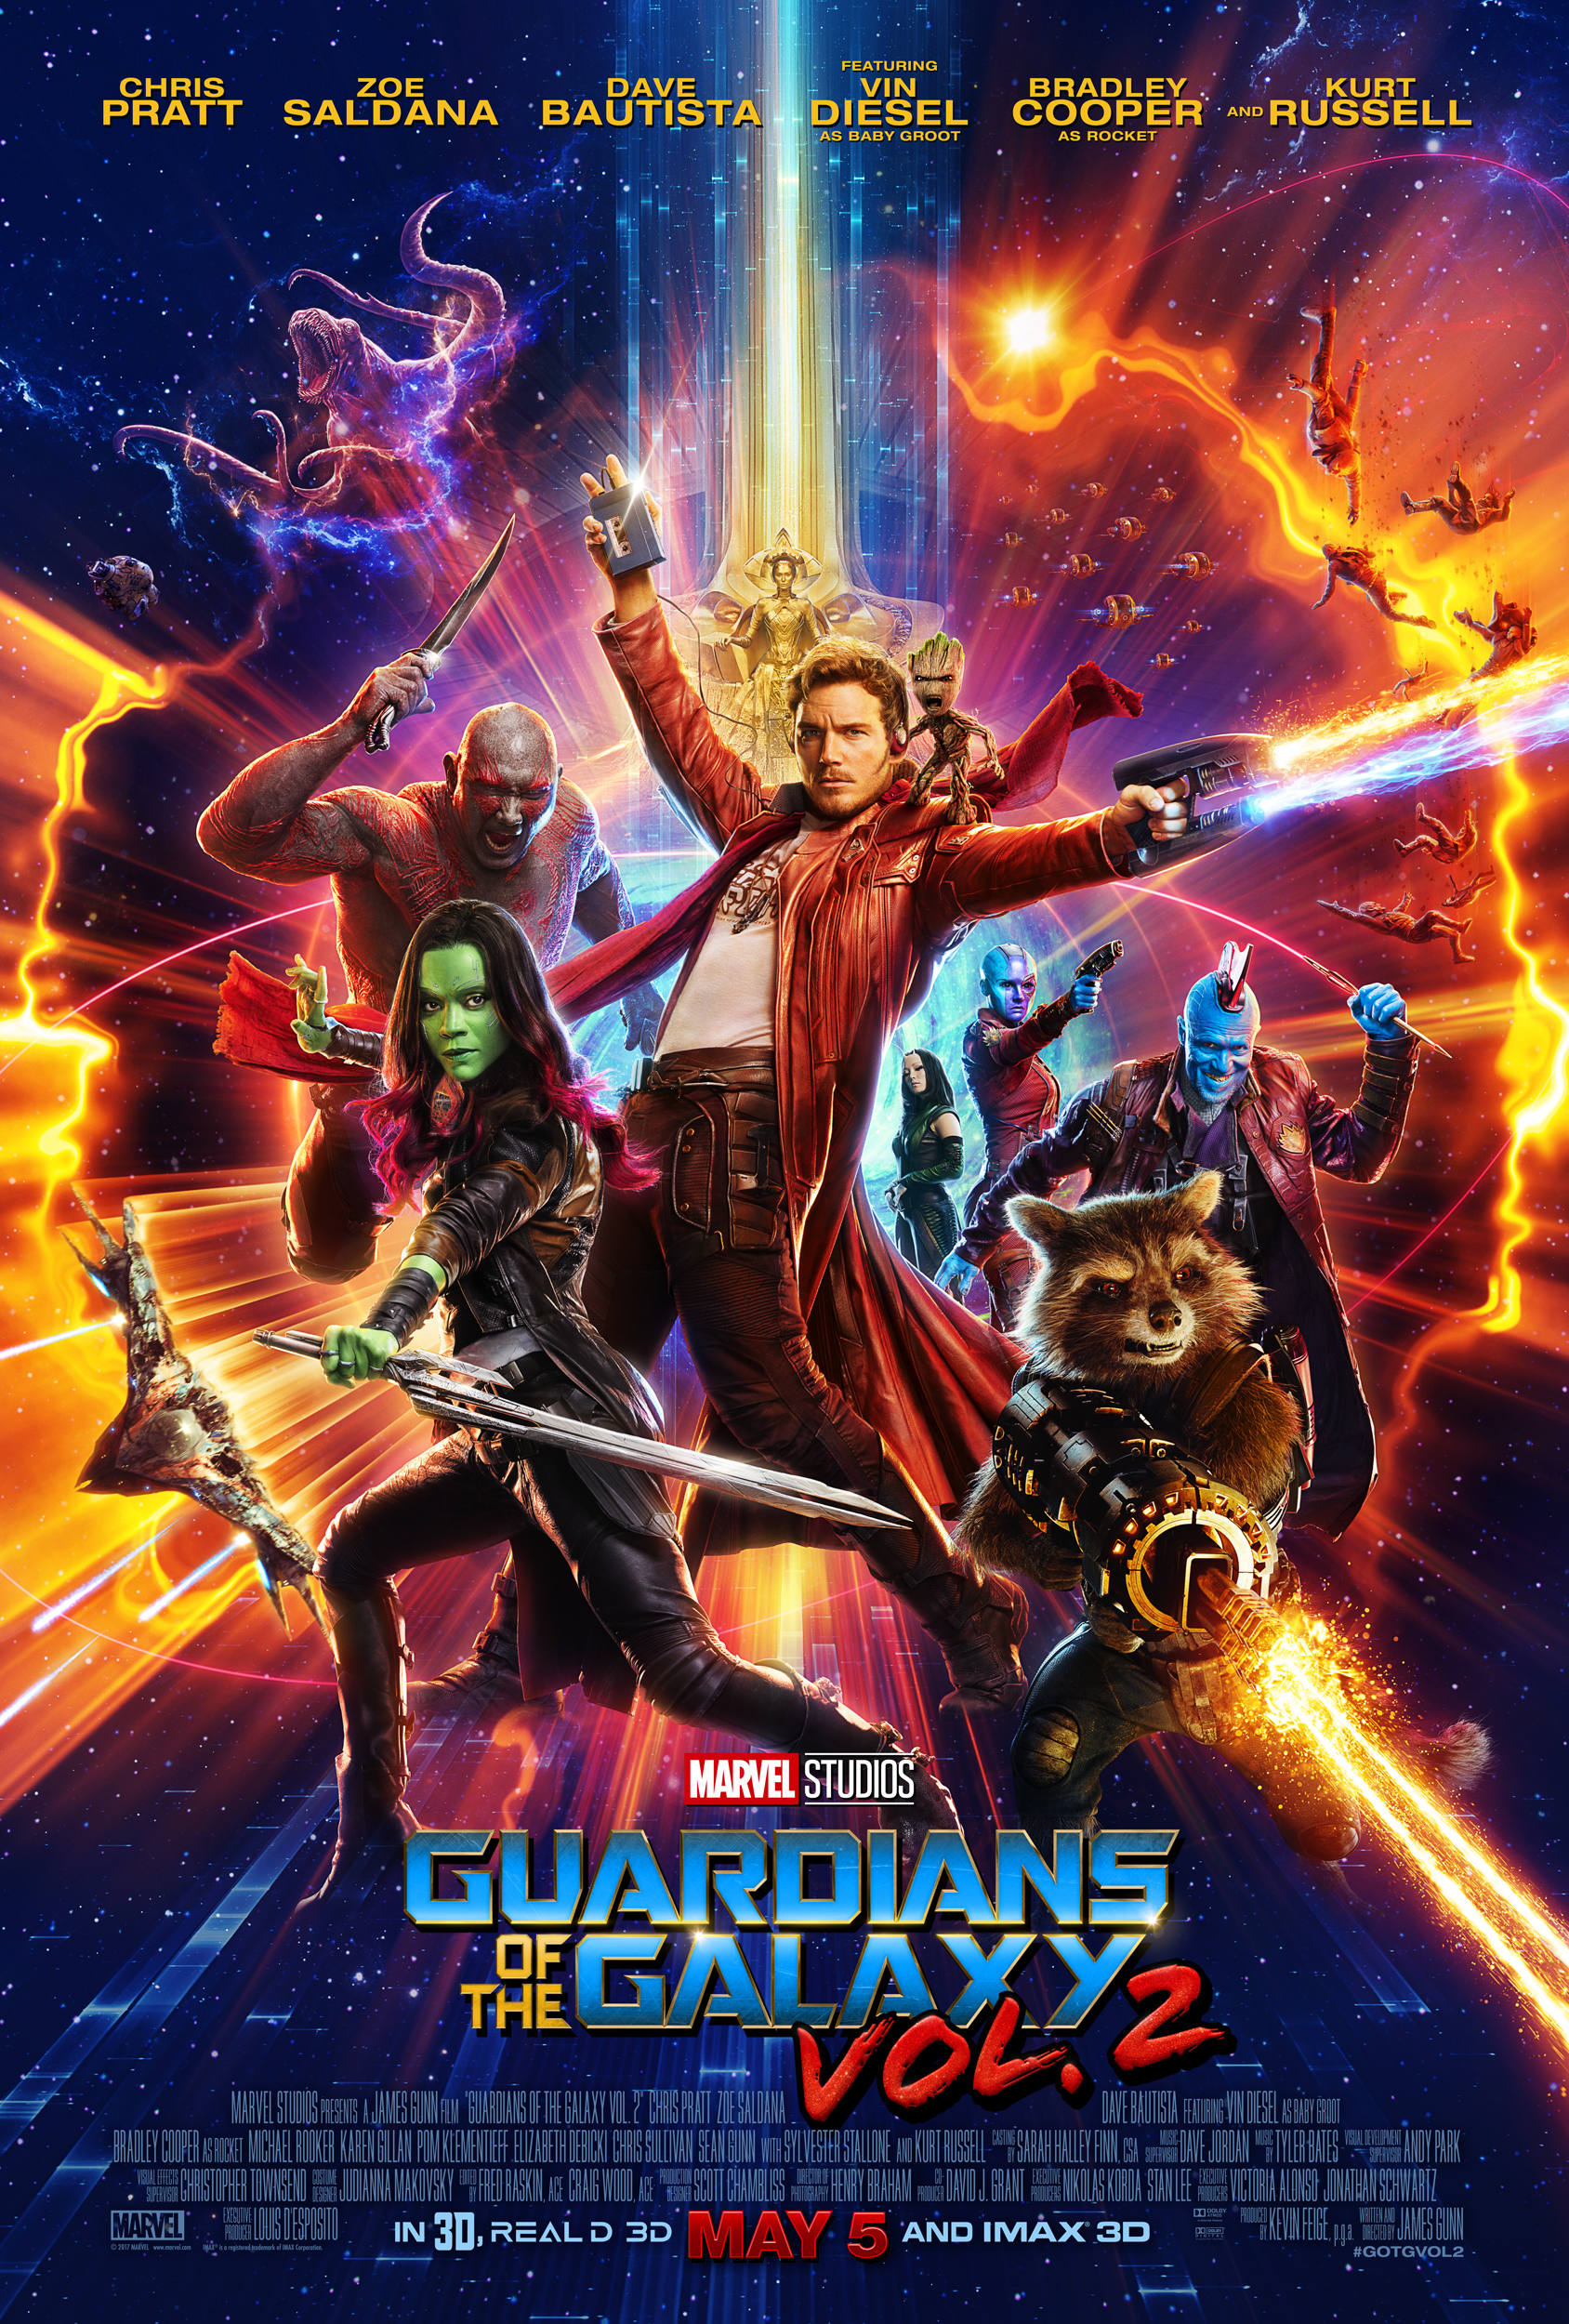 Guardians_of_the_Galaxy_Vol._2_(film)_poster_004